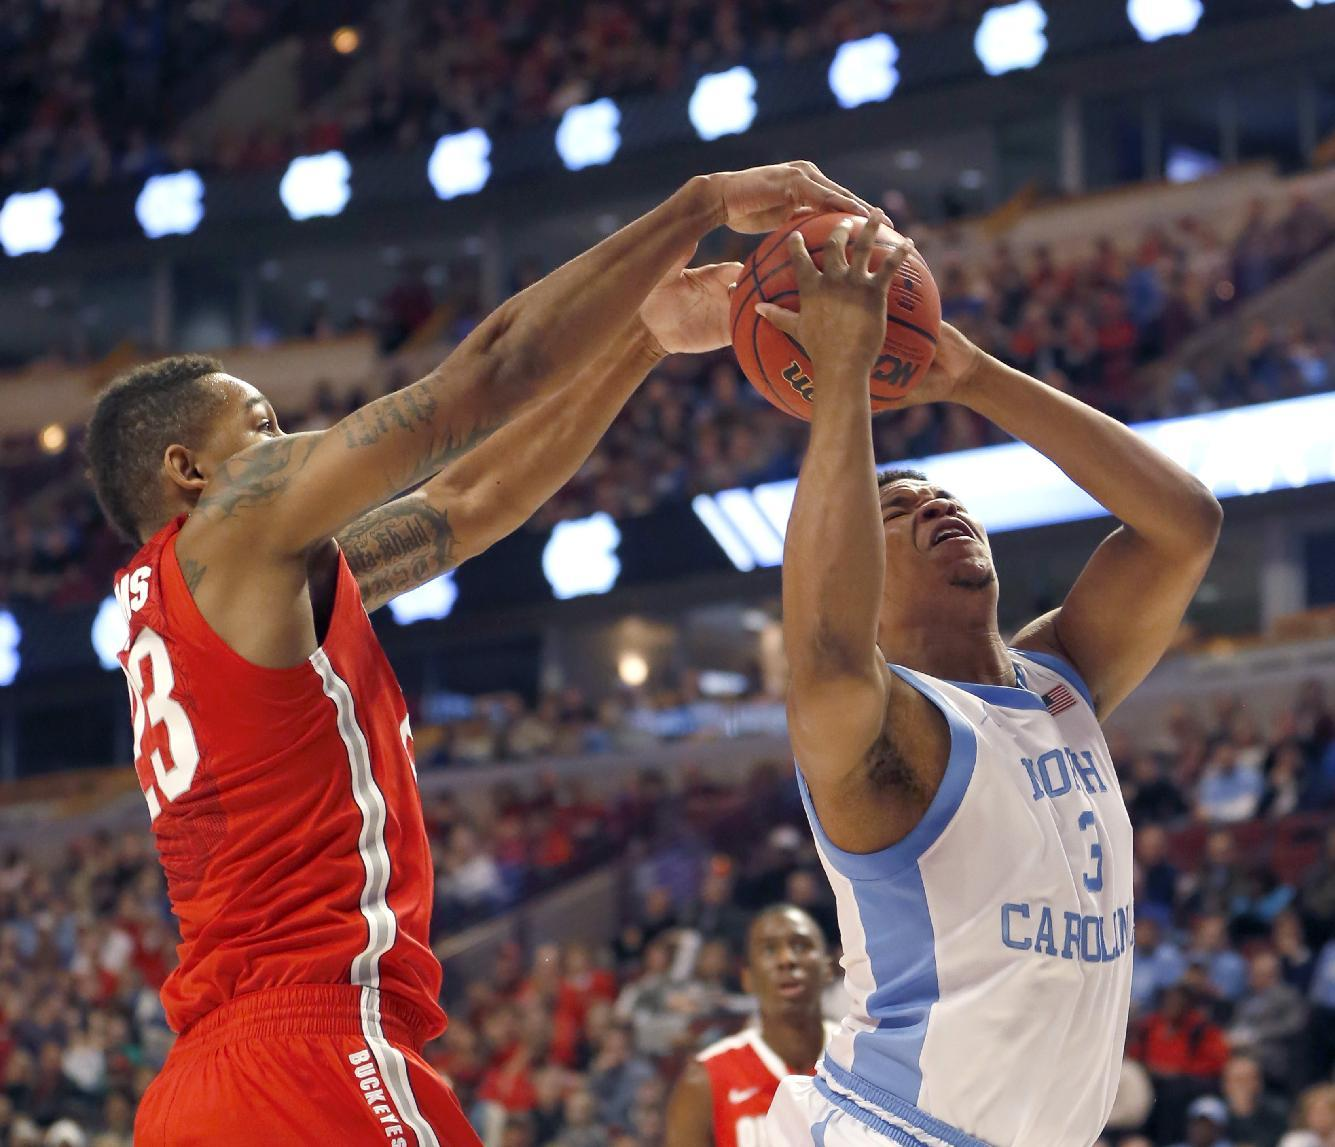 No. 24 North Carolina beats No. 12 Ohio St 82-74